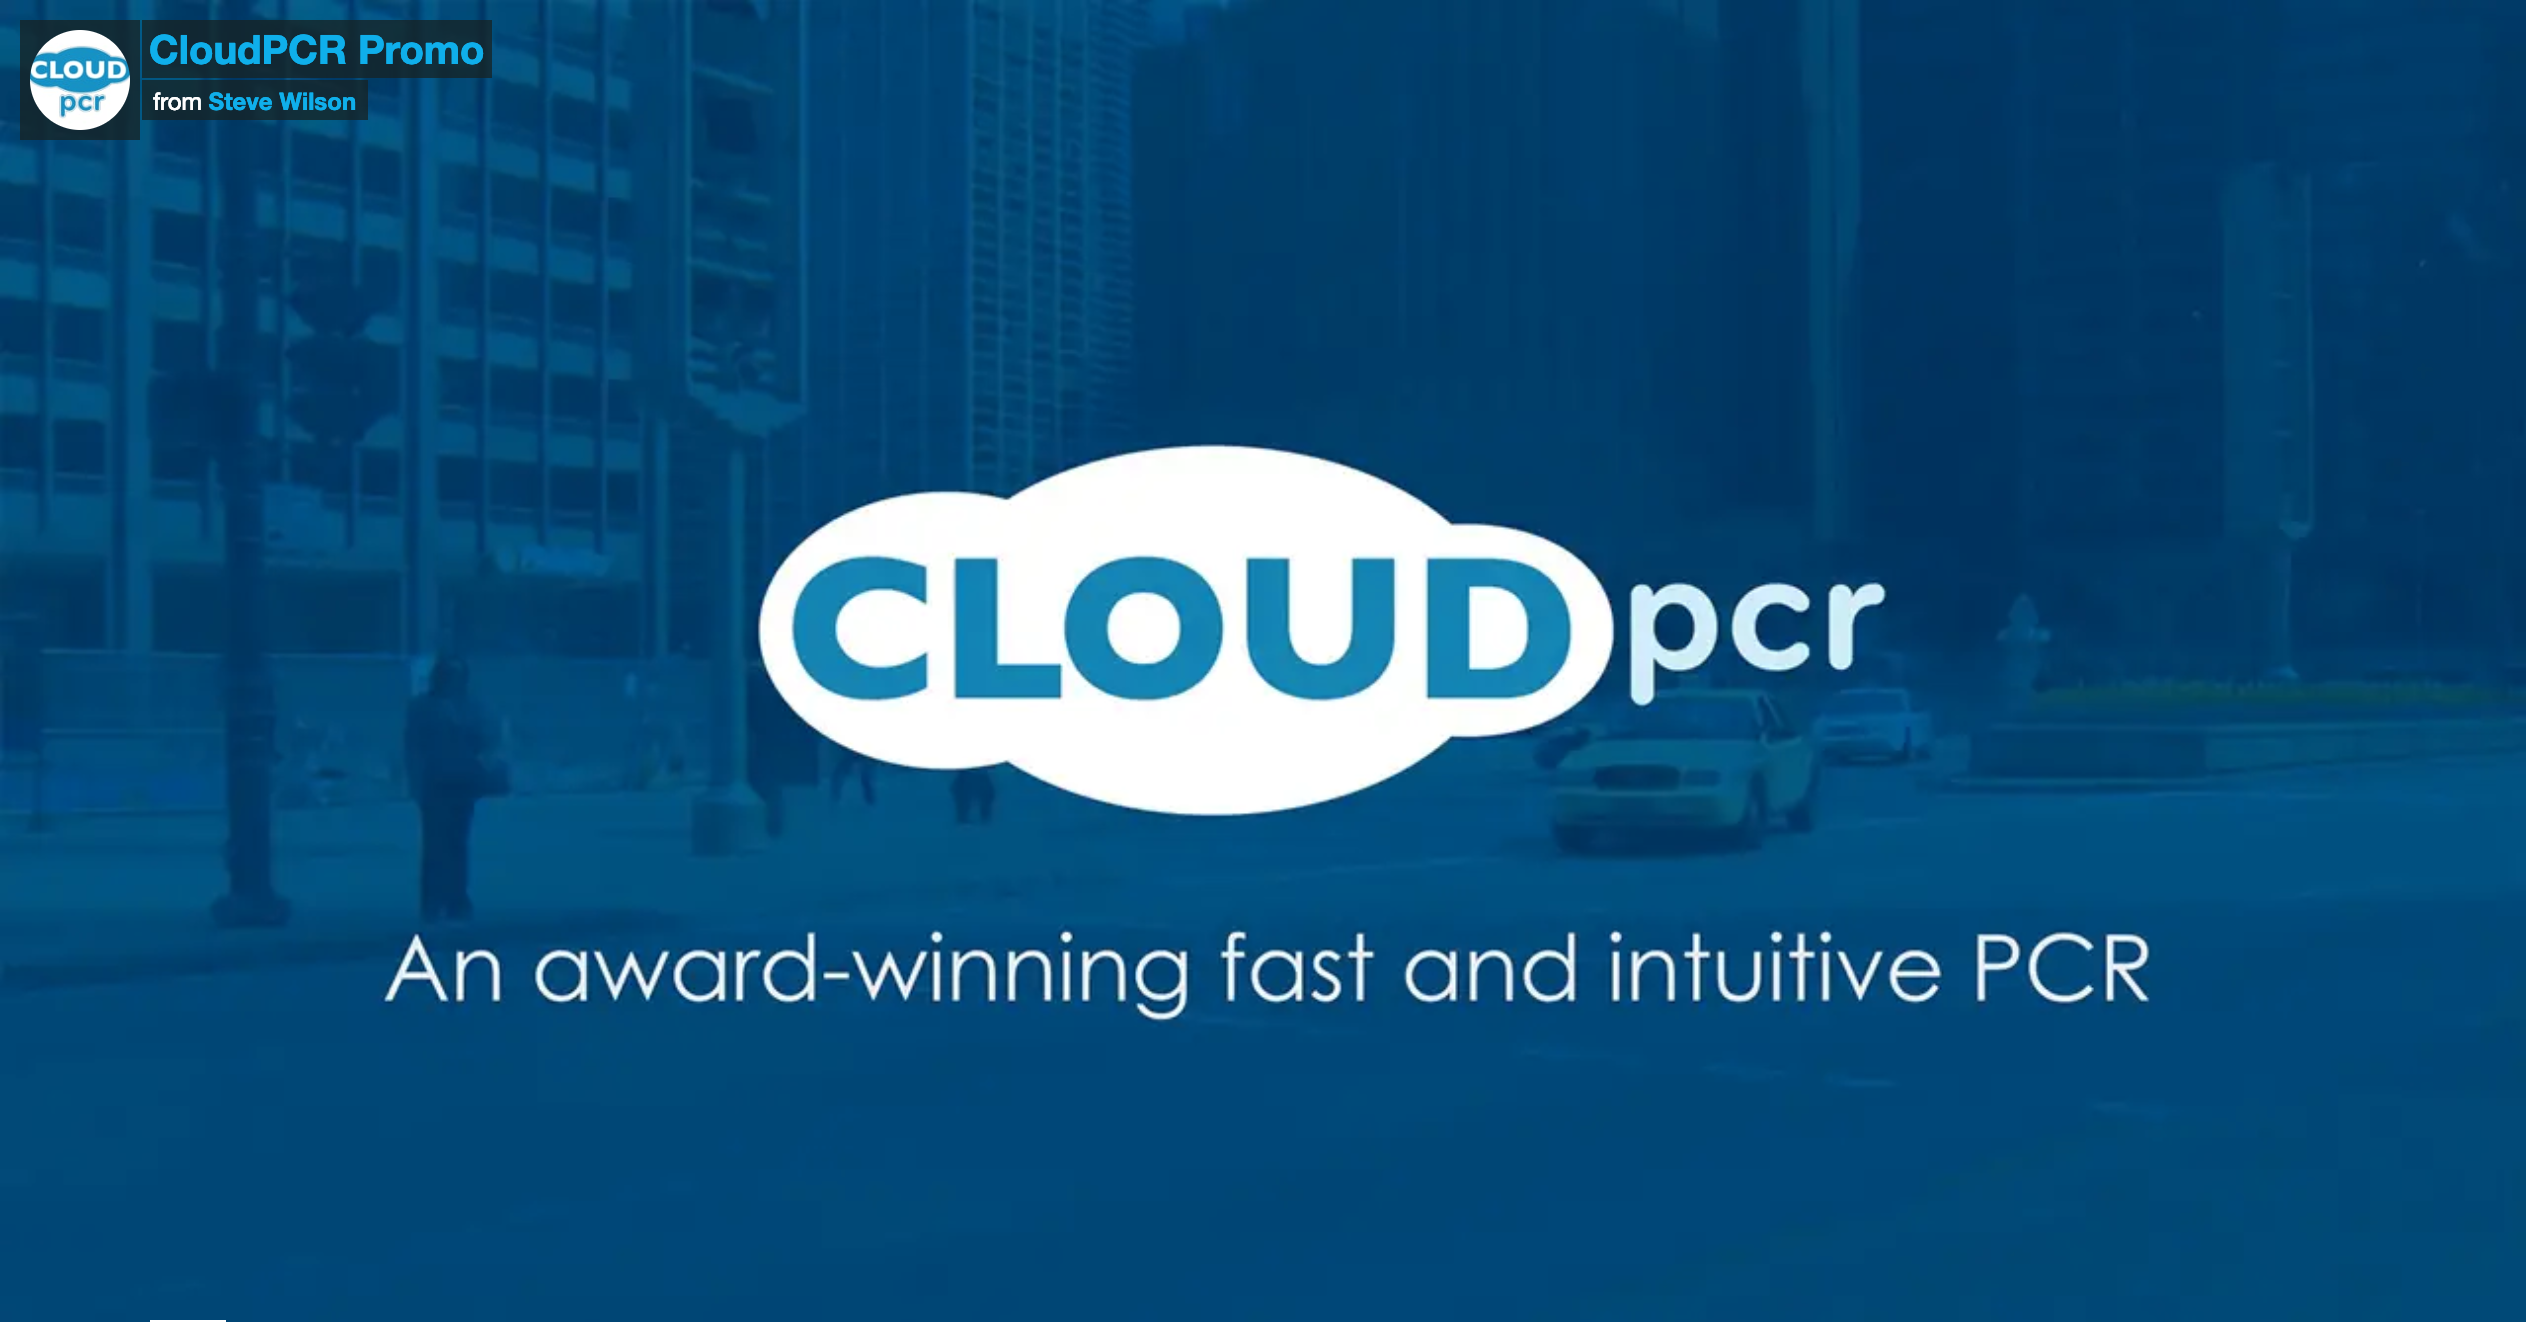 See all the features of CloudPCR